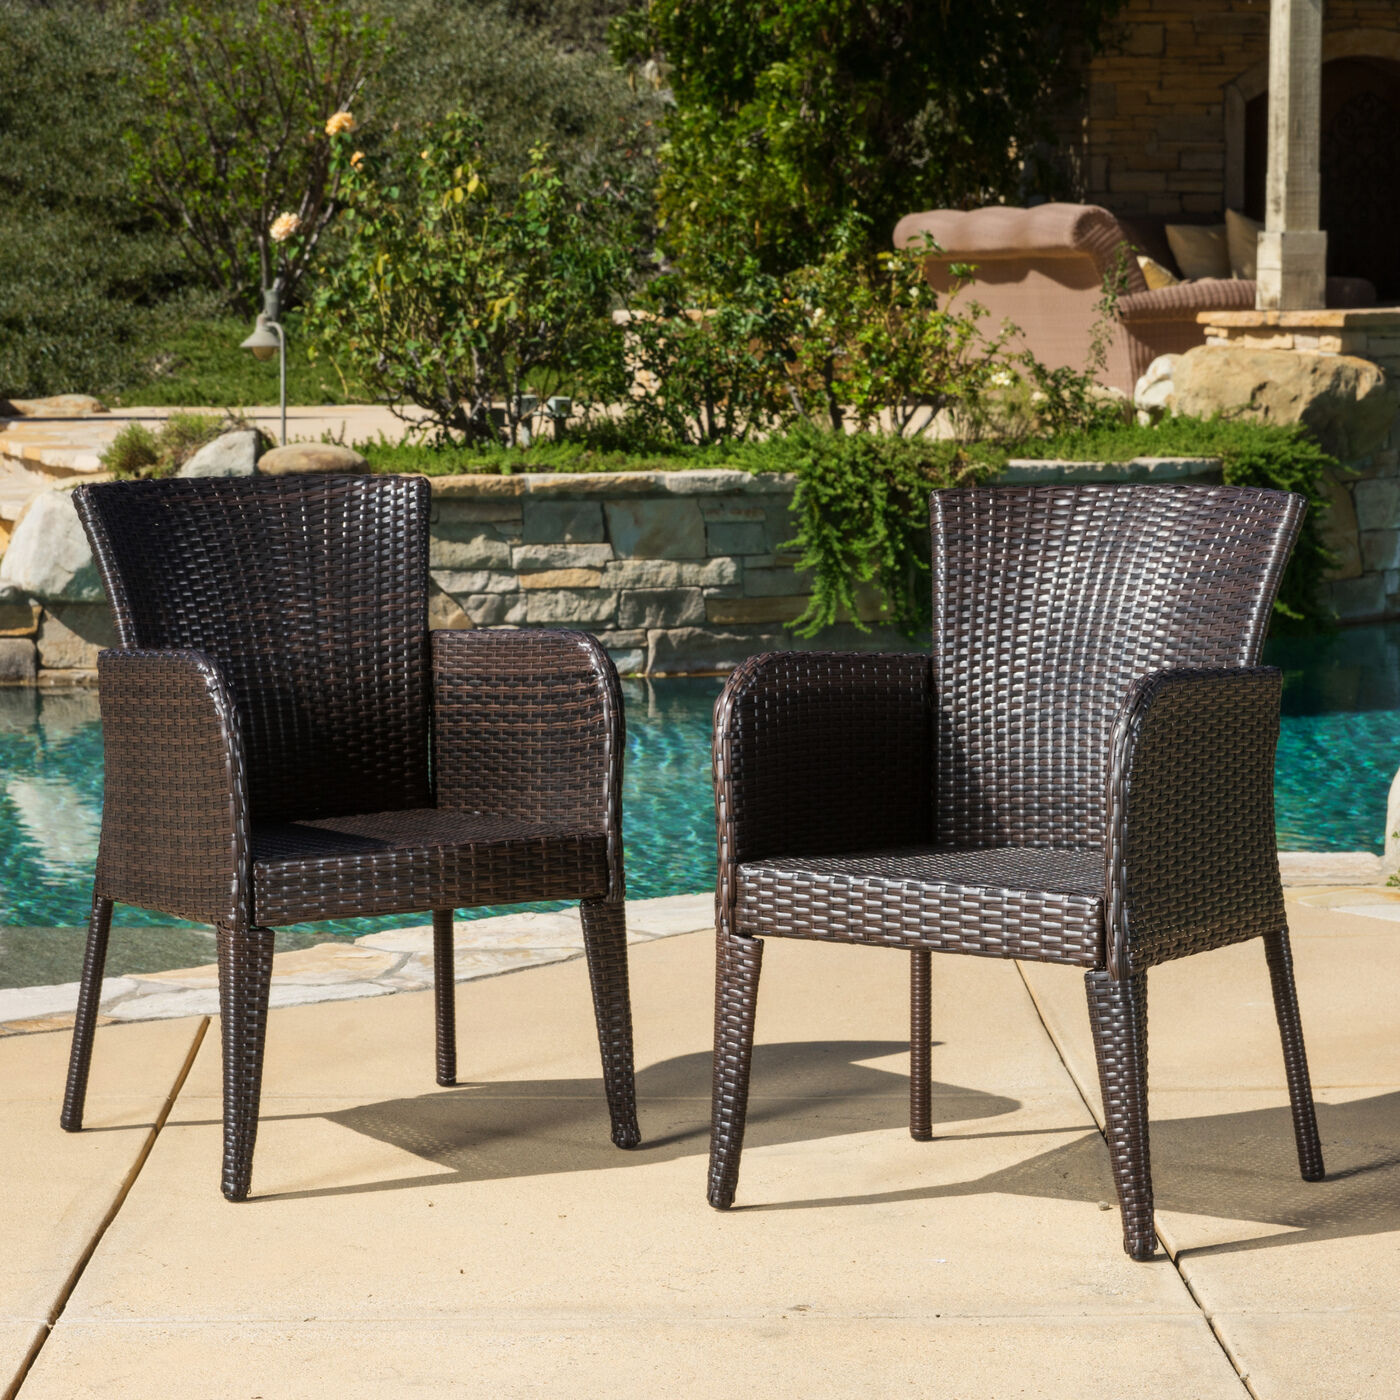 Outdoor Patio Furniture For Small Deck: Outdoor Patio Set Modern Rattan Bistro Contemporary Wicker